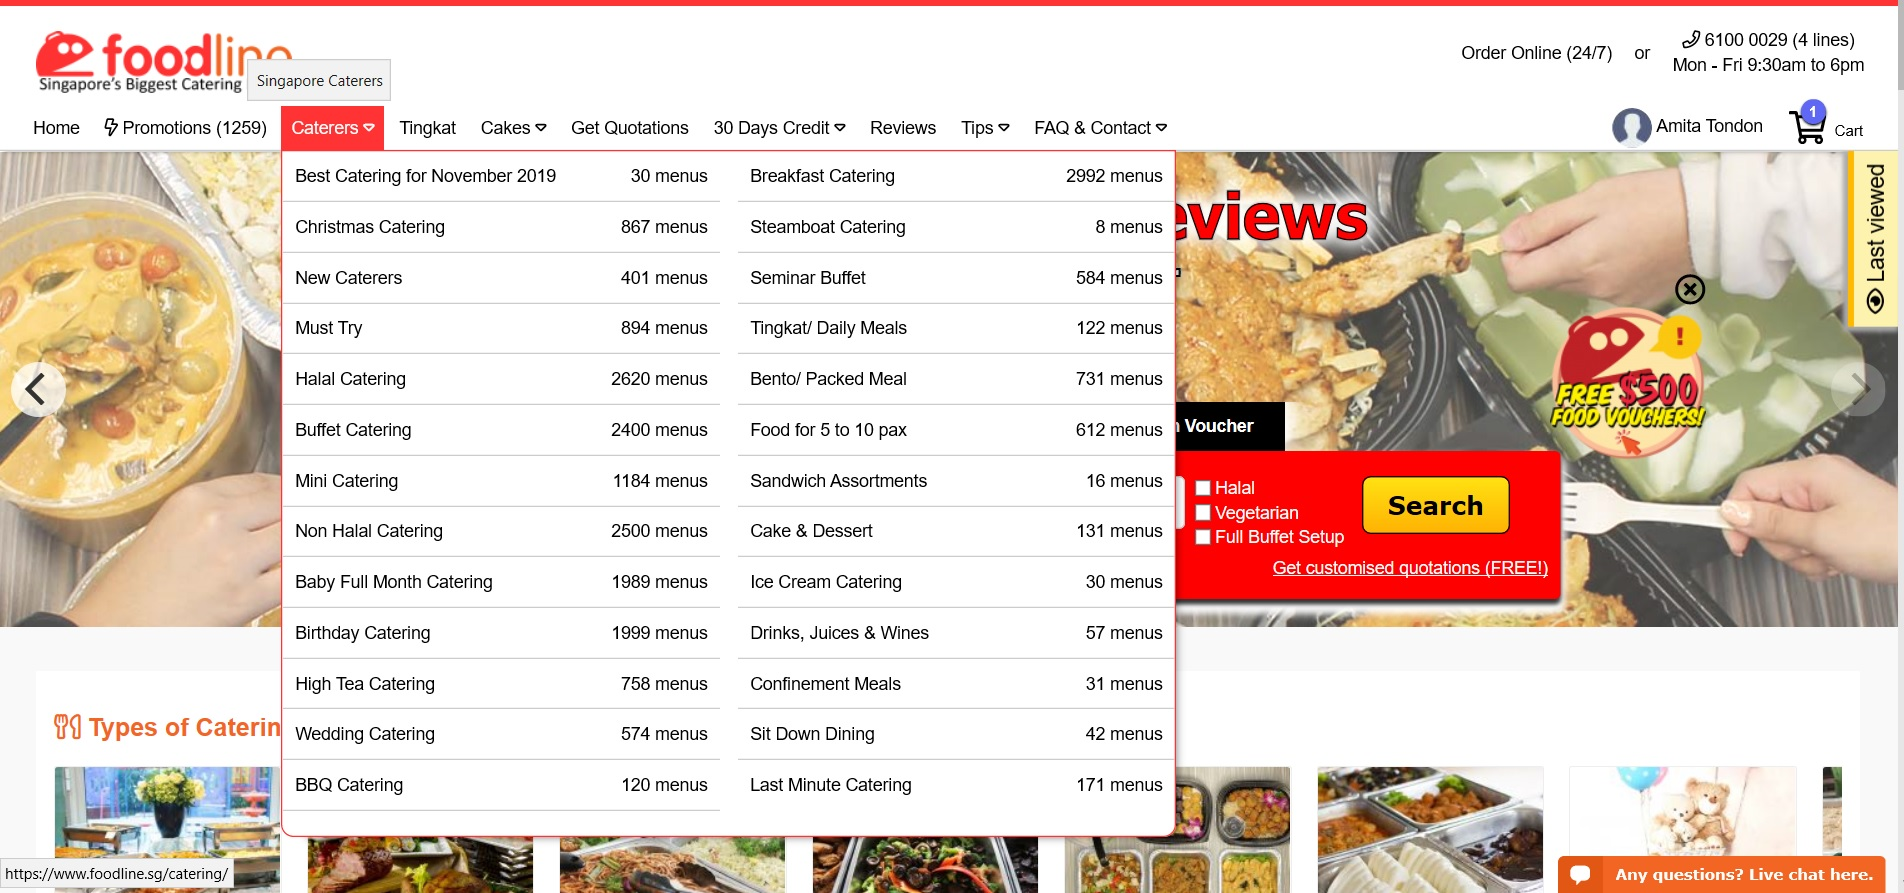 Dropdown of caterers under FoodLine.